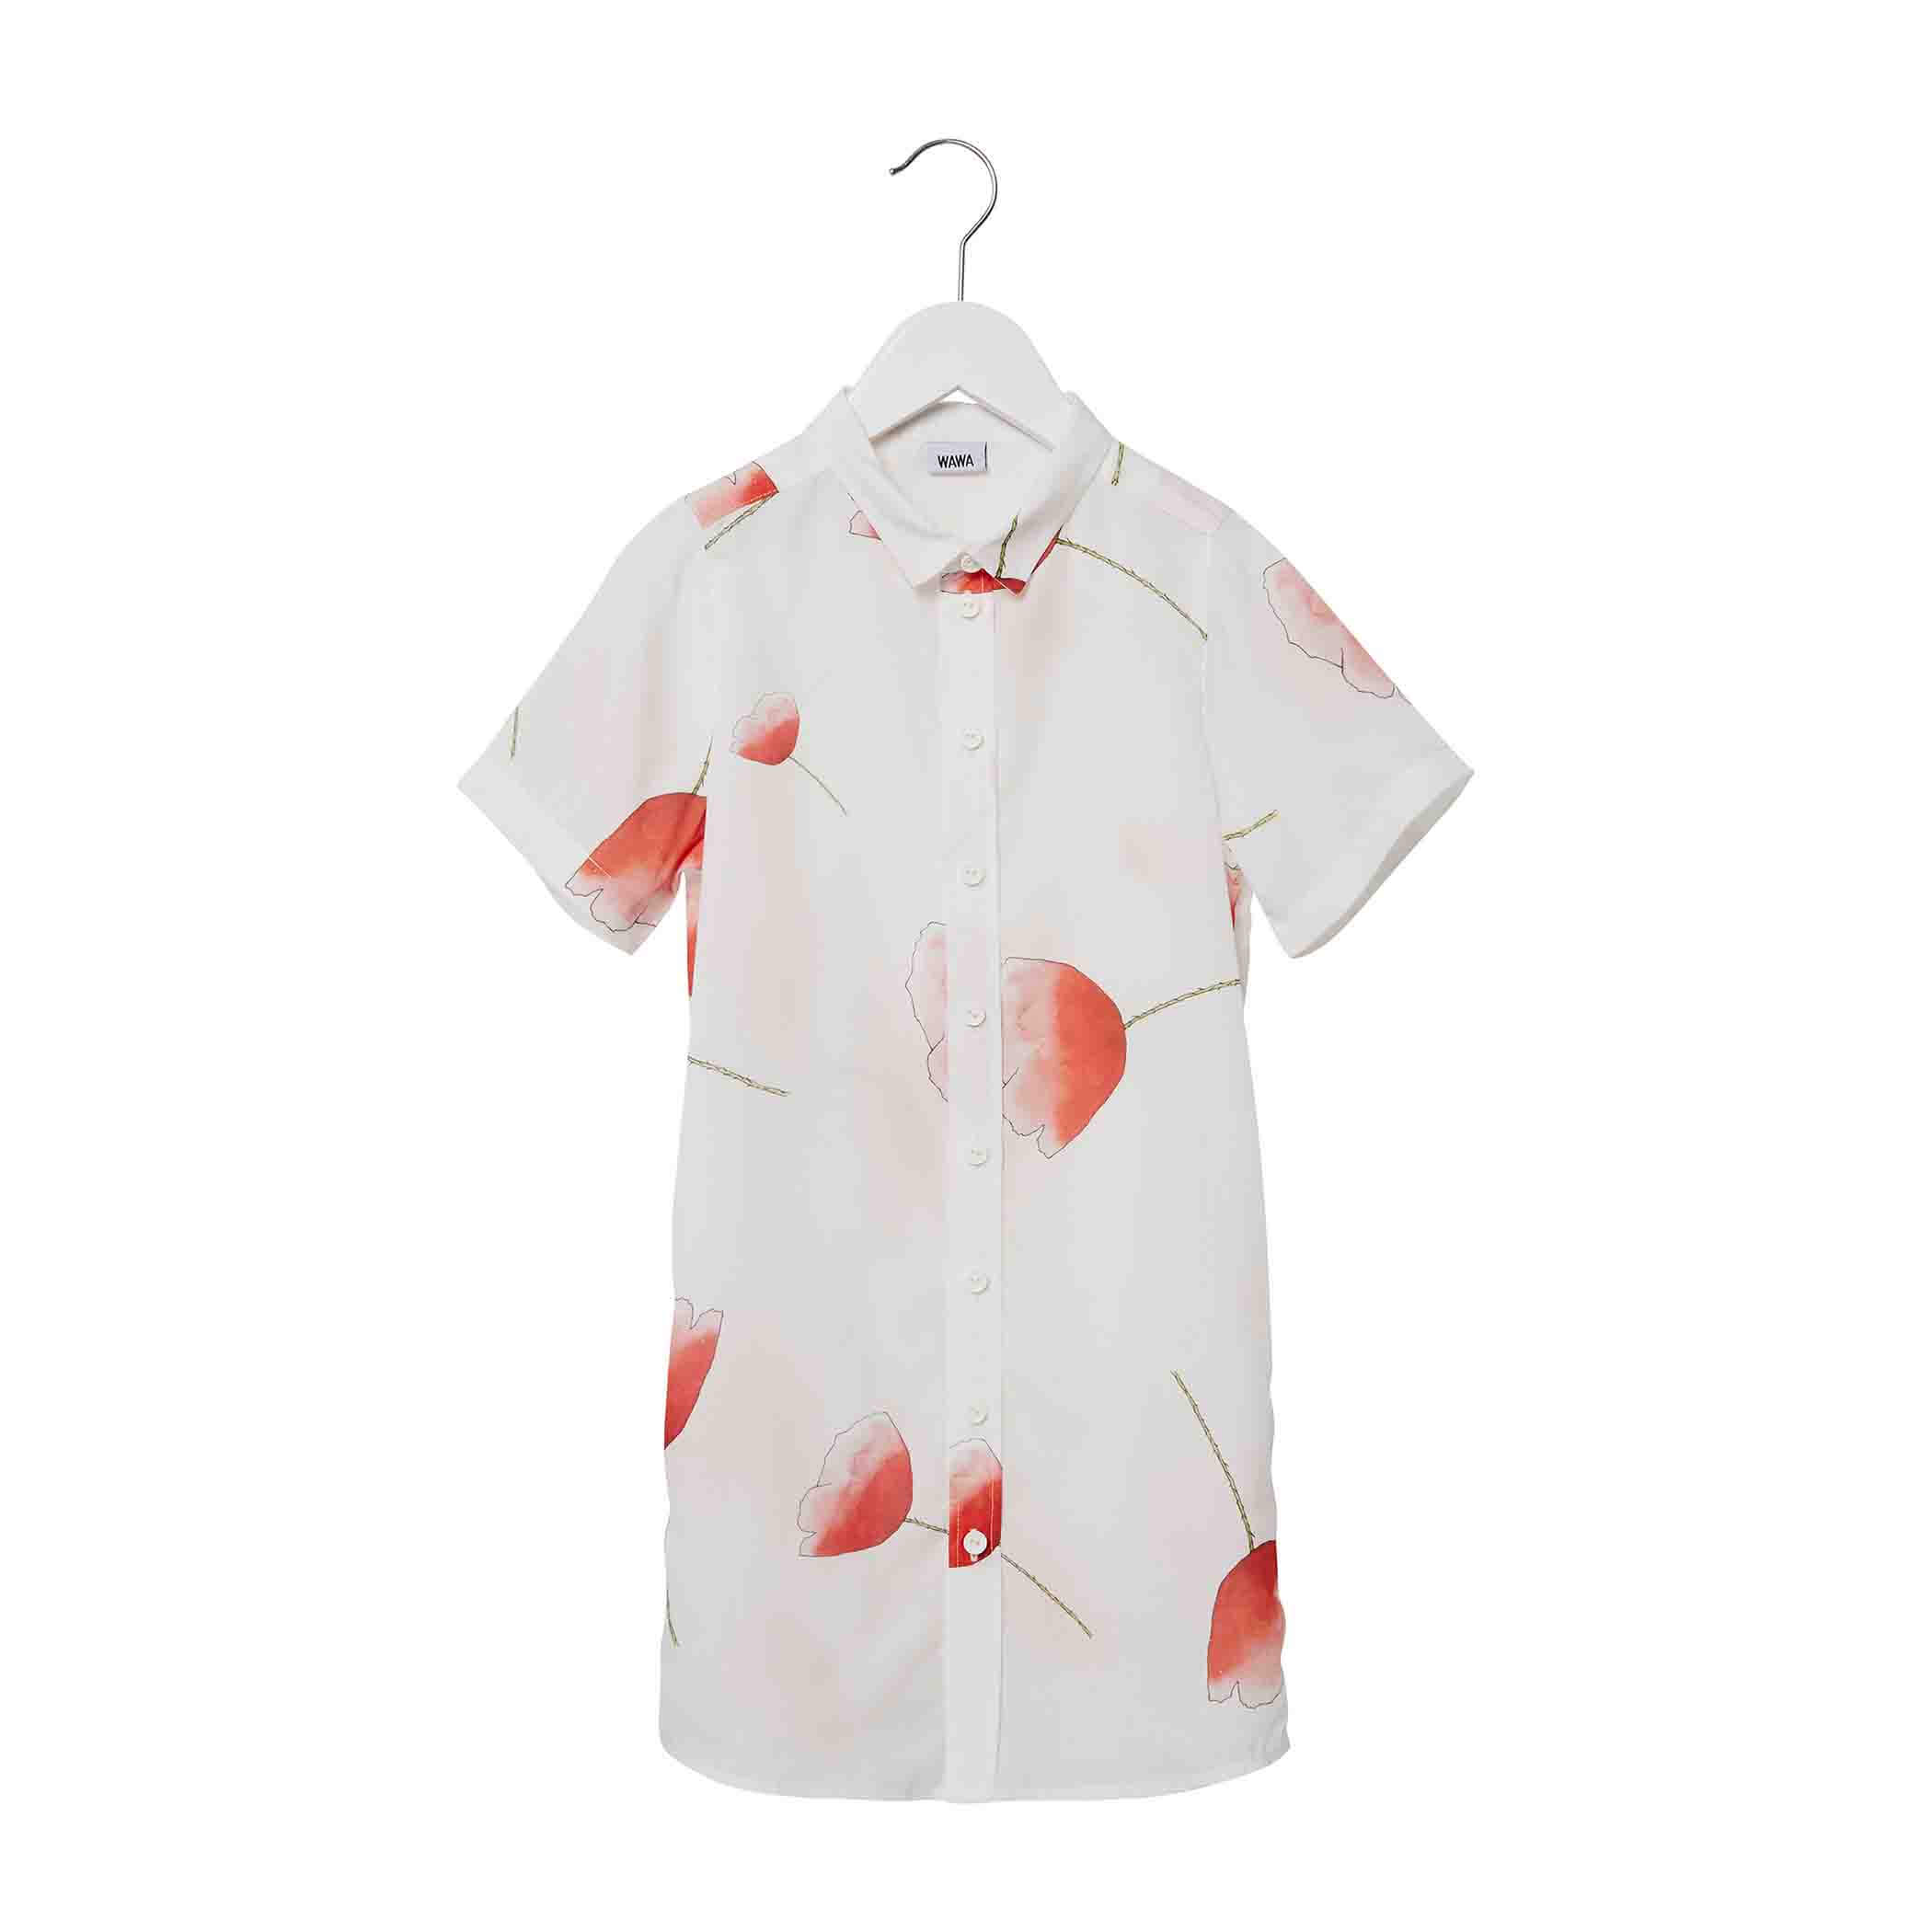 pepeandnika presents wawa copenhagen elegant kidsbrand summerclothes girls shirt dress in white with watercolour print